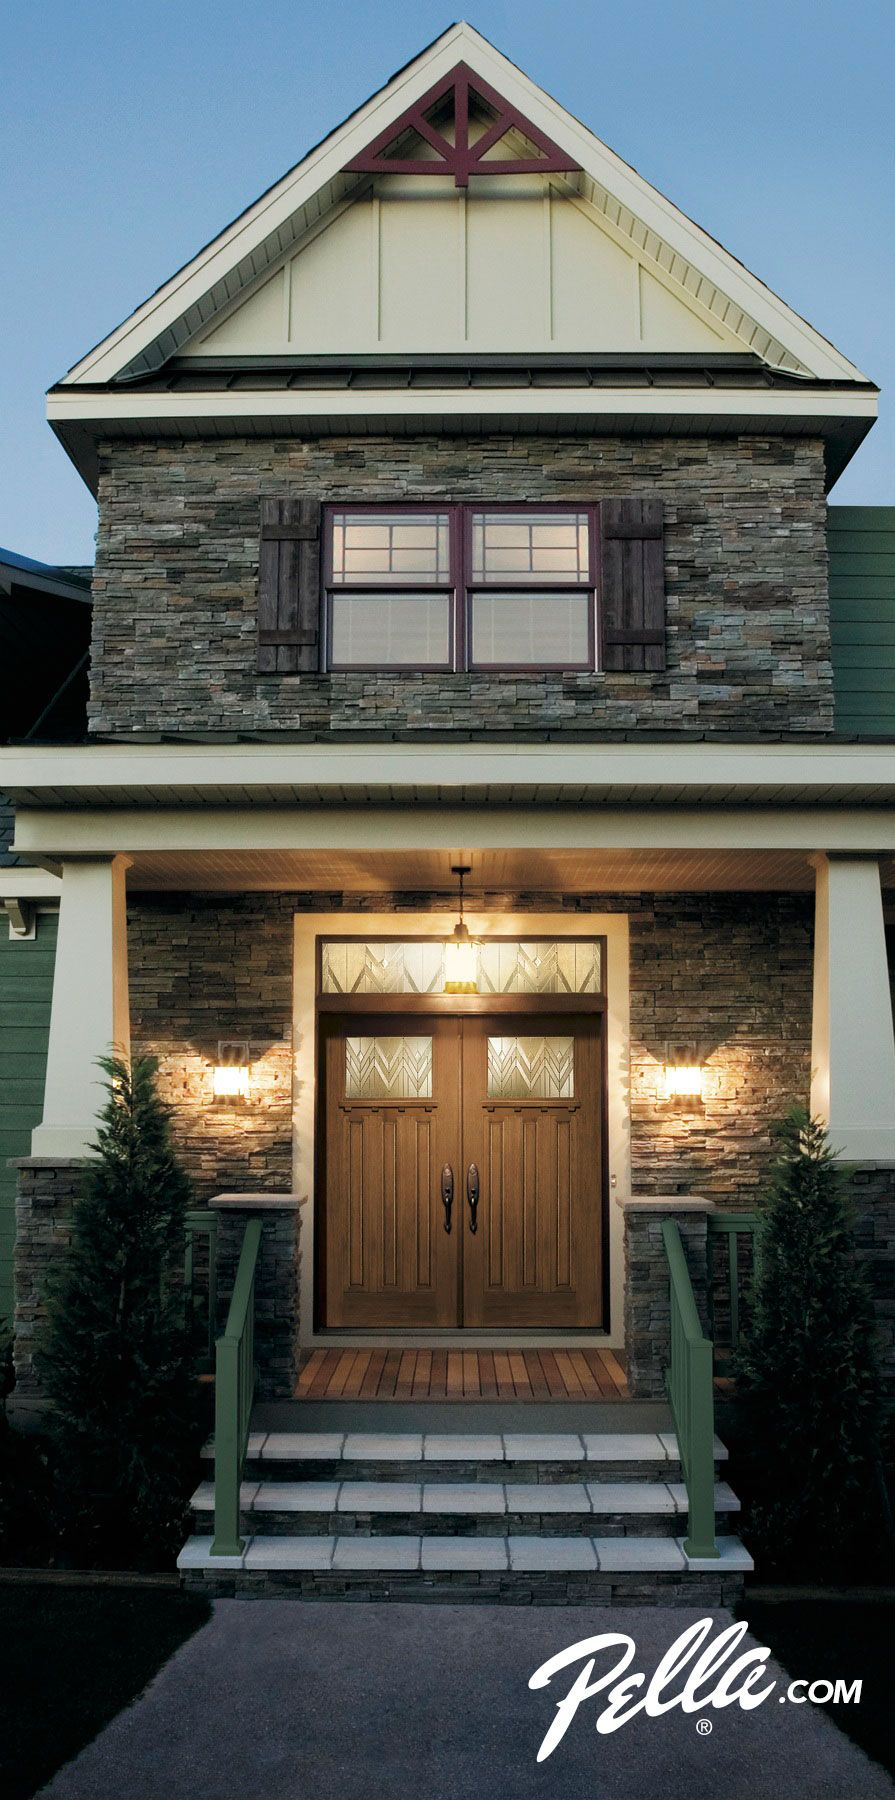 Pella entry doors with sidelights - Keep Your Home Warmer This Winter With A Pella Energy Efficient Fiberglass Front Door